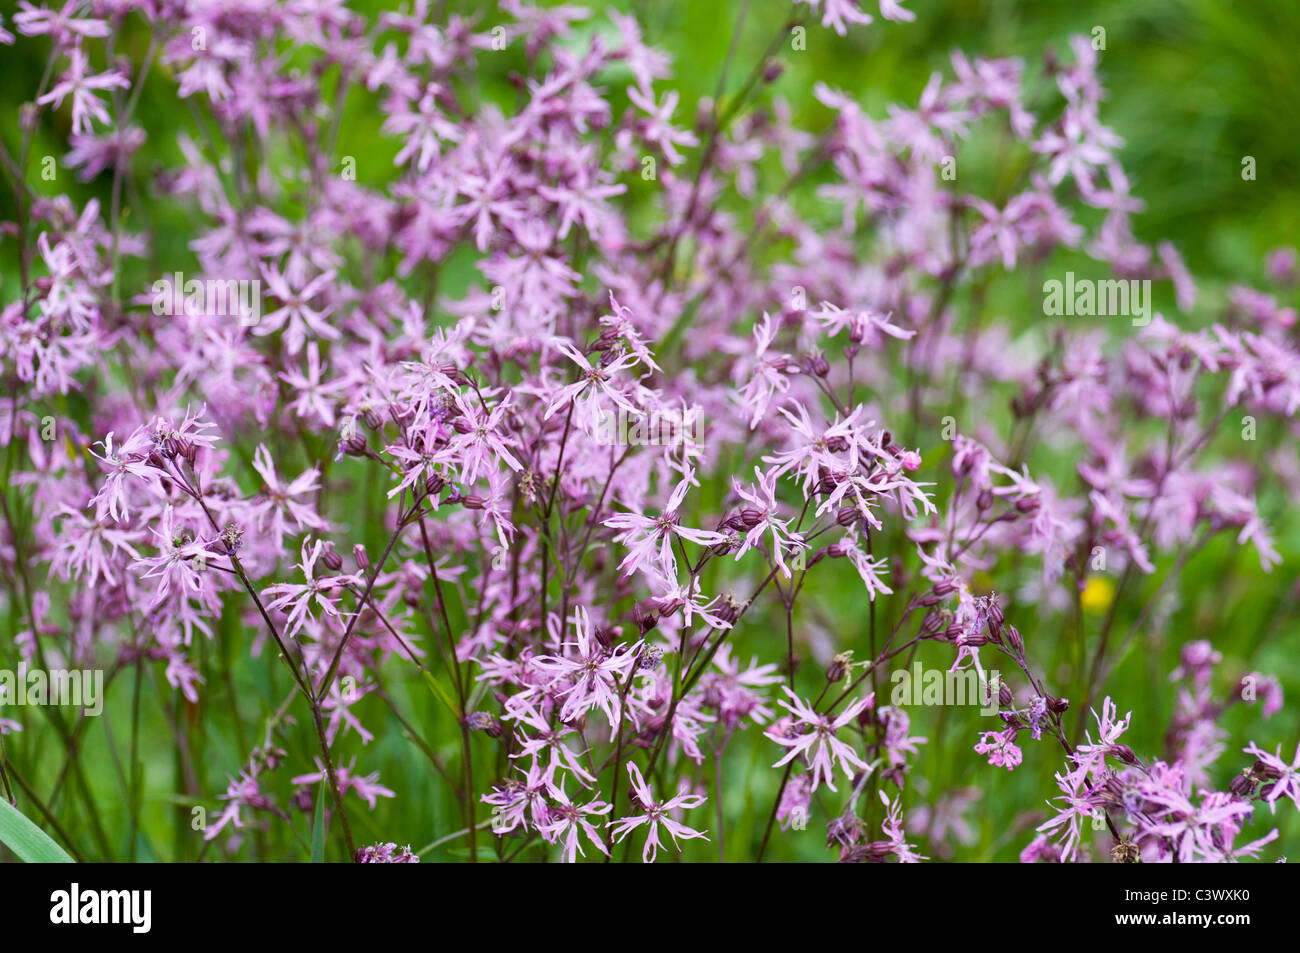 Wild pink campion flowers meadow campion ragged robin stock photo wild pink campion flowers meadow campion ragged robin stock photo 36834420 alamy mightylinksfo Image collections